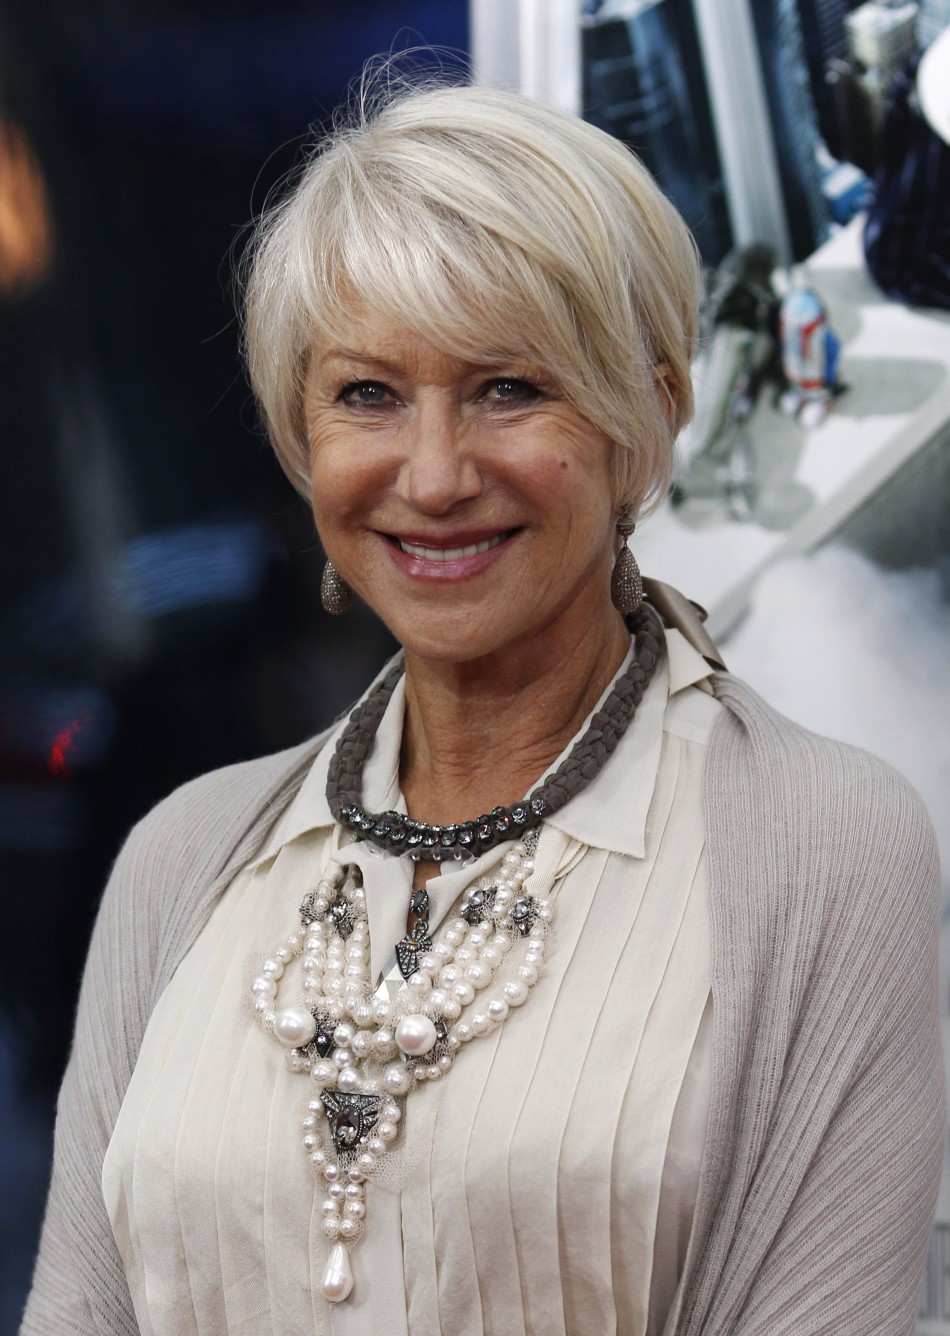 66-year-old Helen Mirren wins 'Body of the year' poll